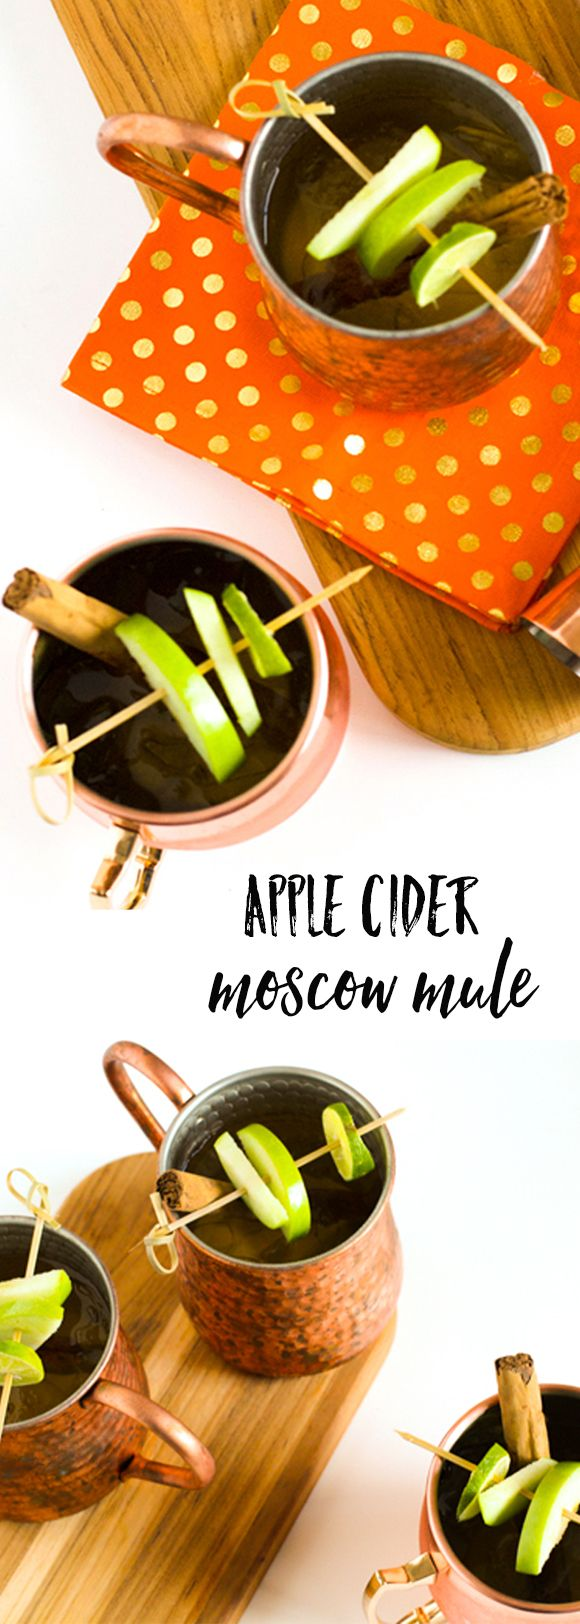 A creative moscow mule recipe. This apple cider moscow mule is delicious!